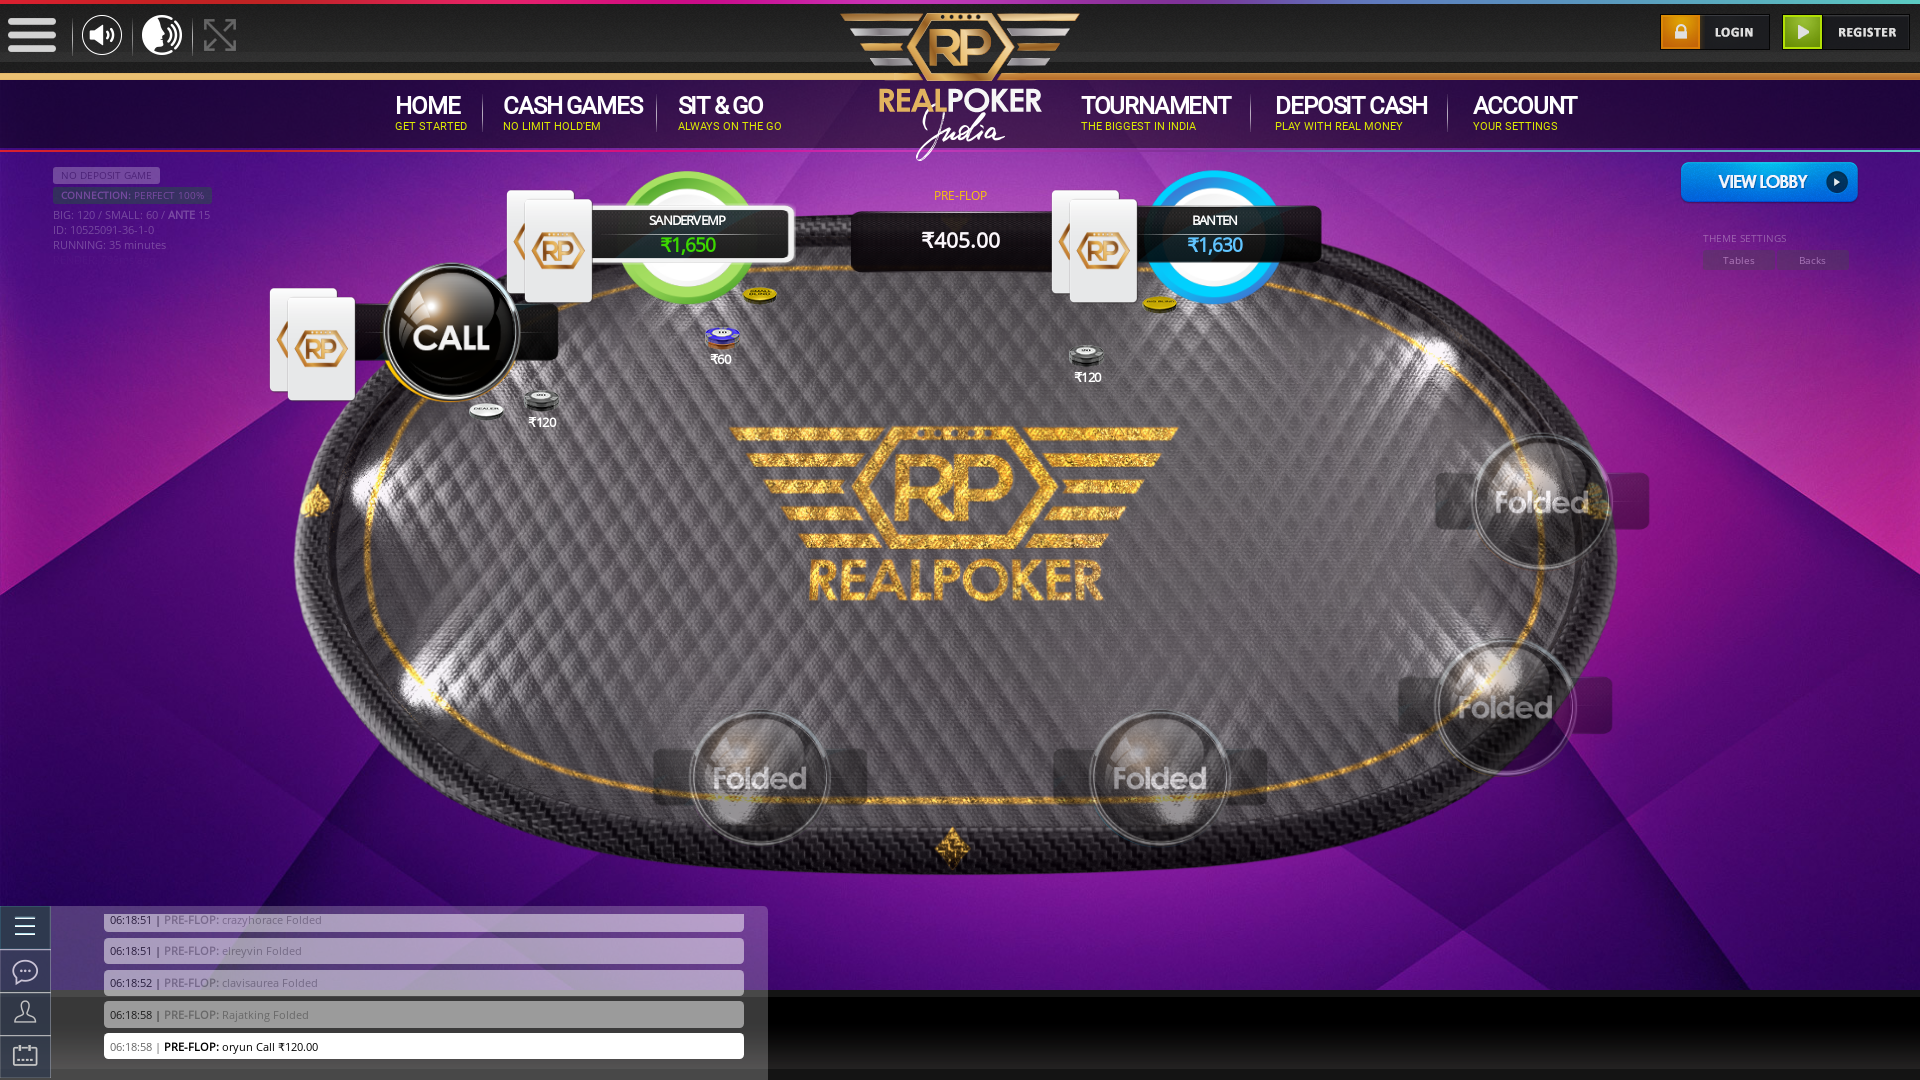 Nagarbhavi, Bangalore online poker game on a 10 player table in the 35th minute of the match